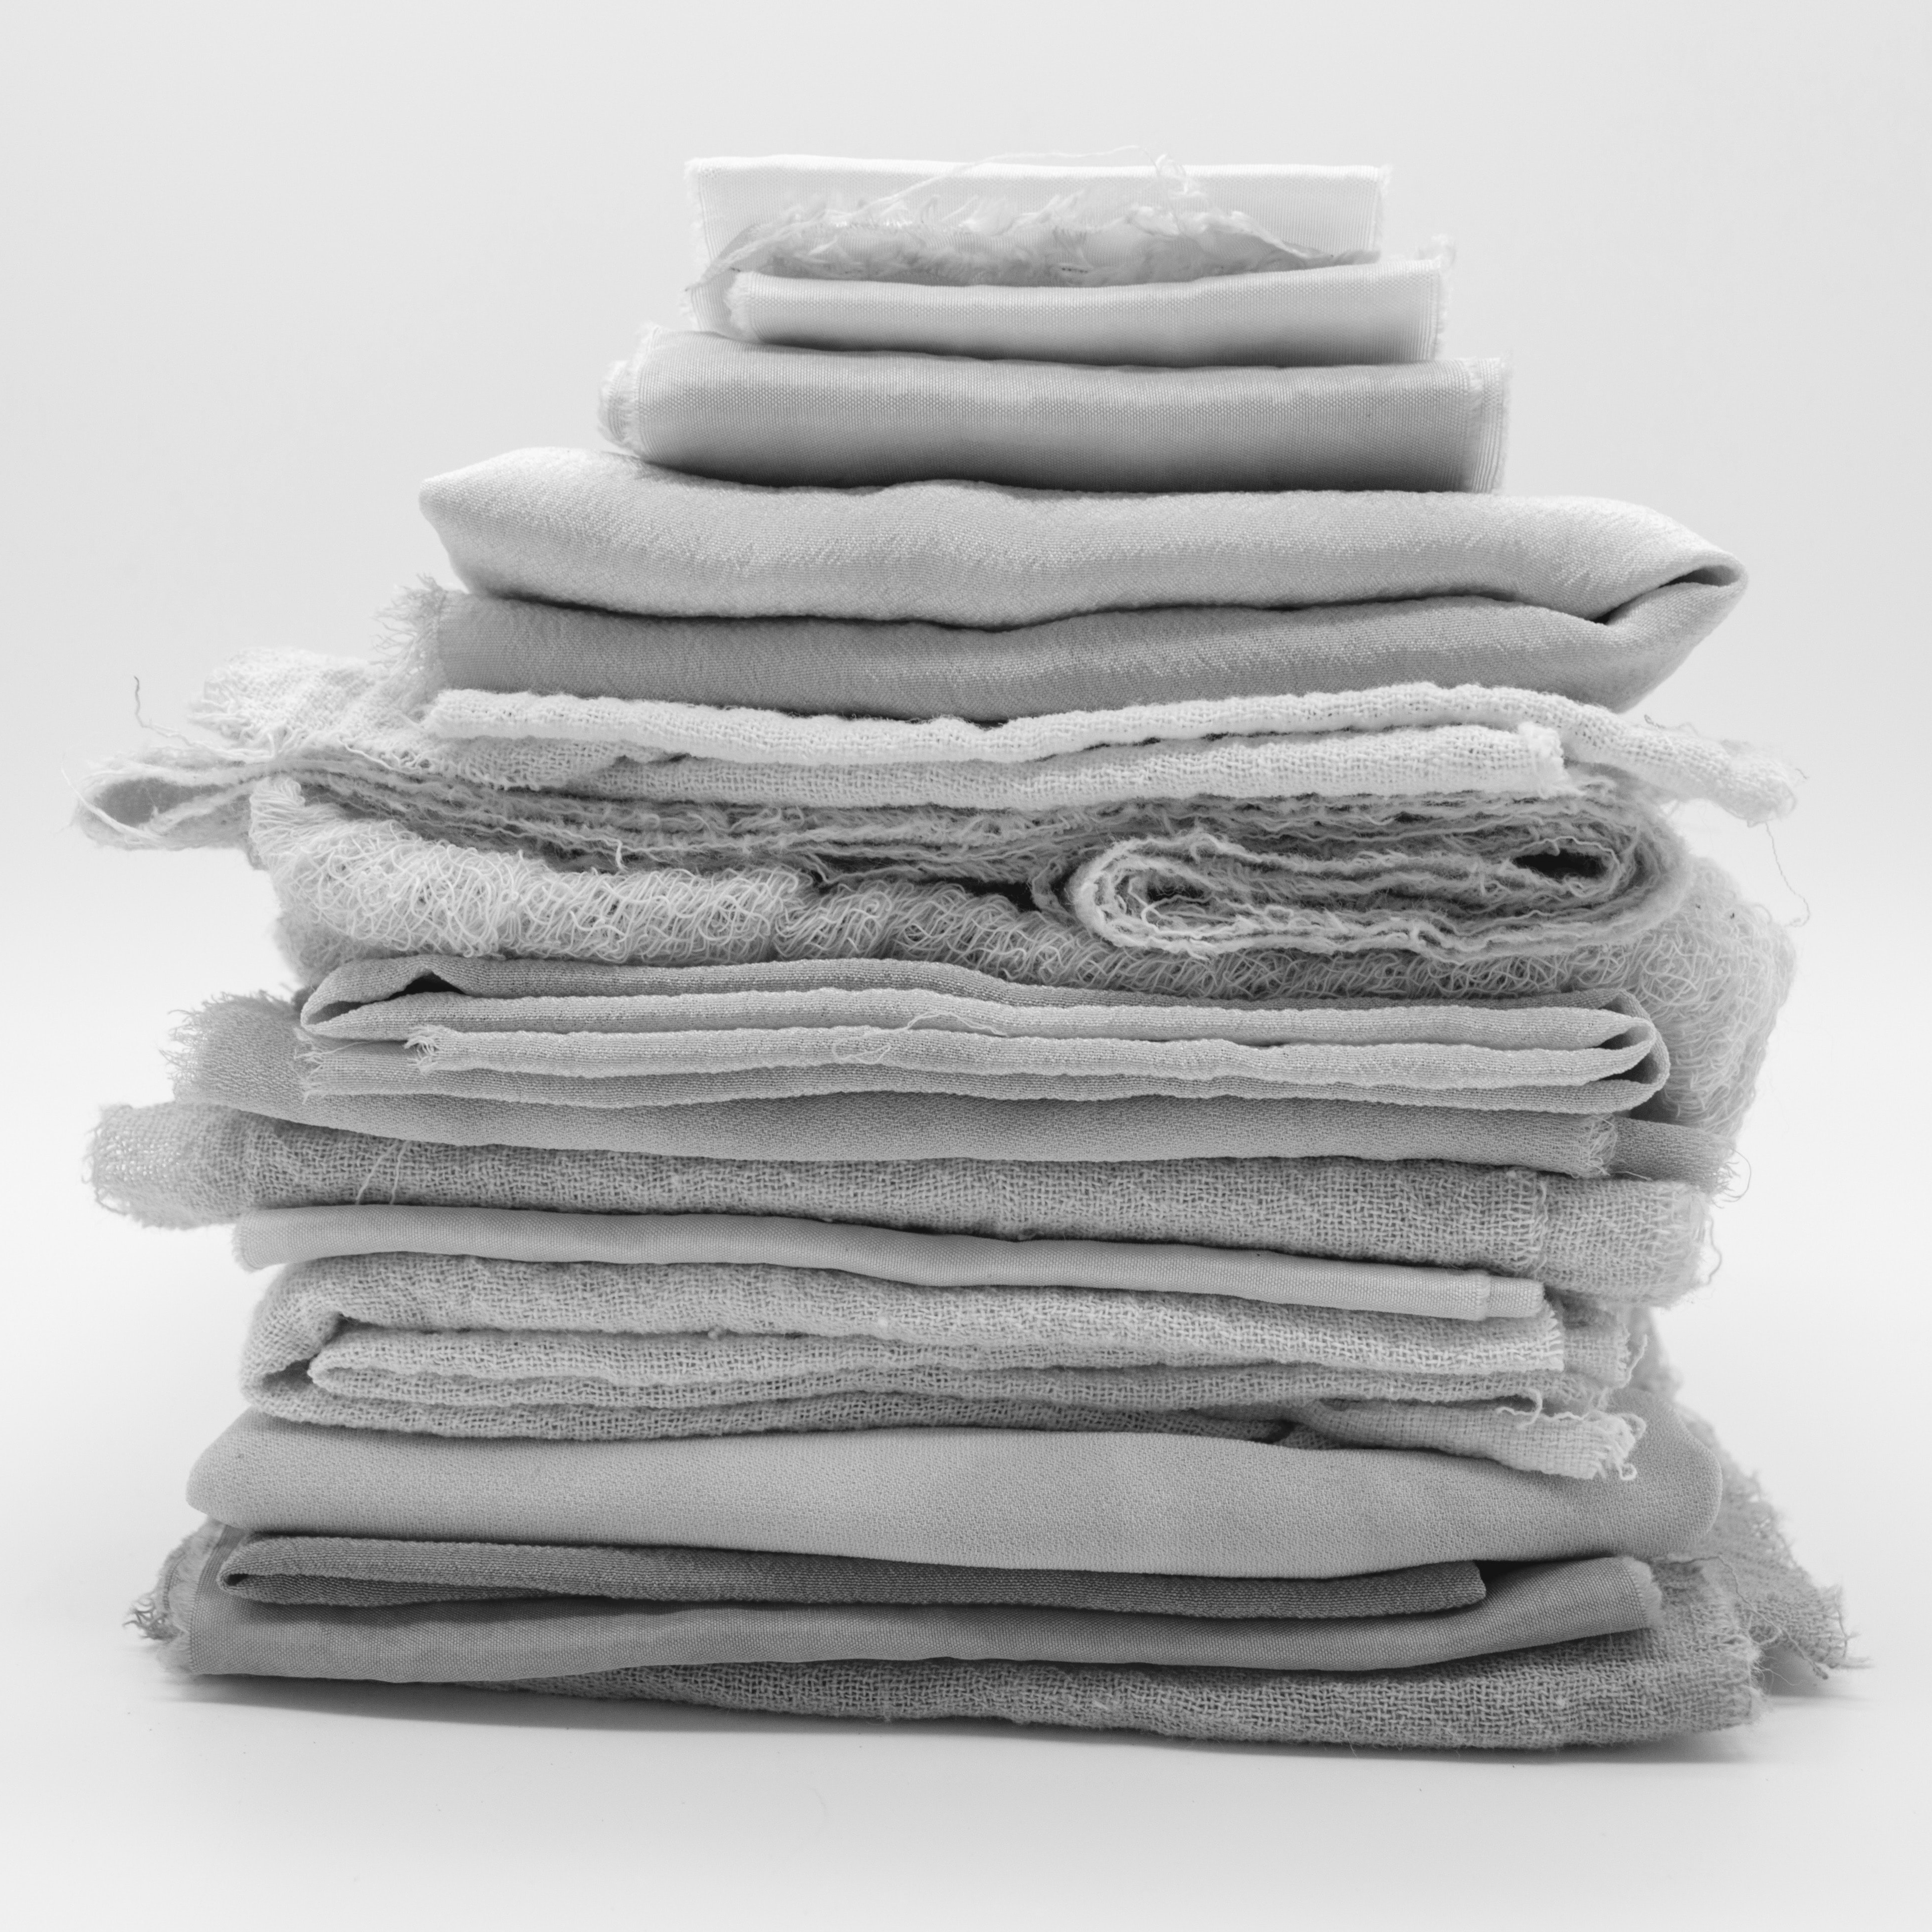 Stack of textiles